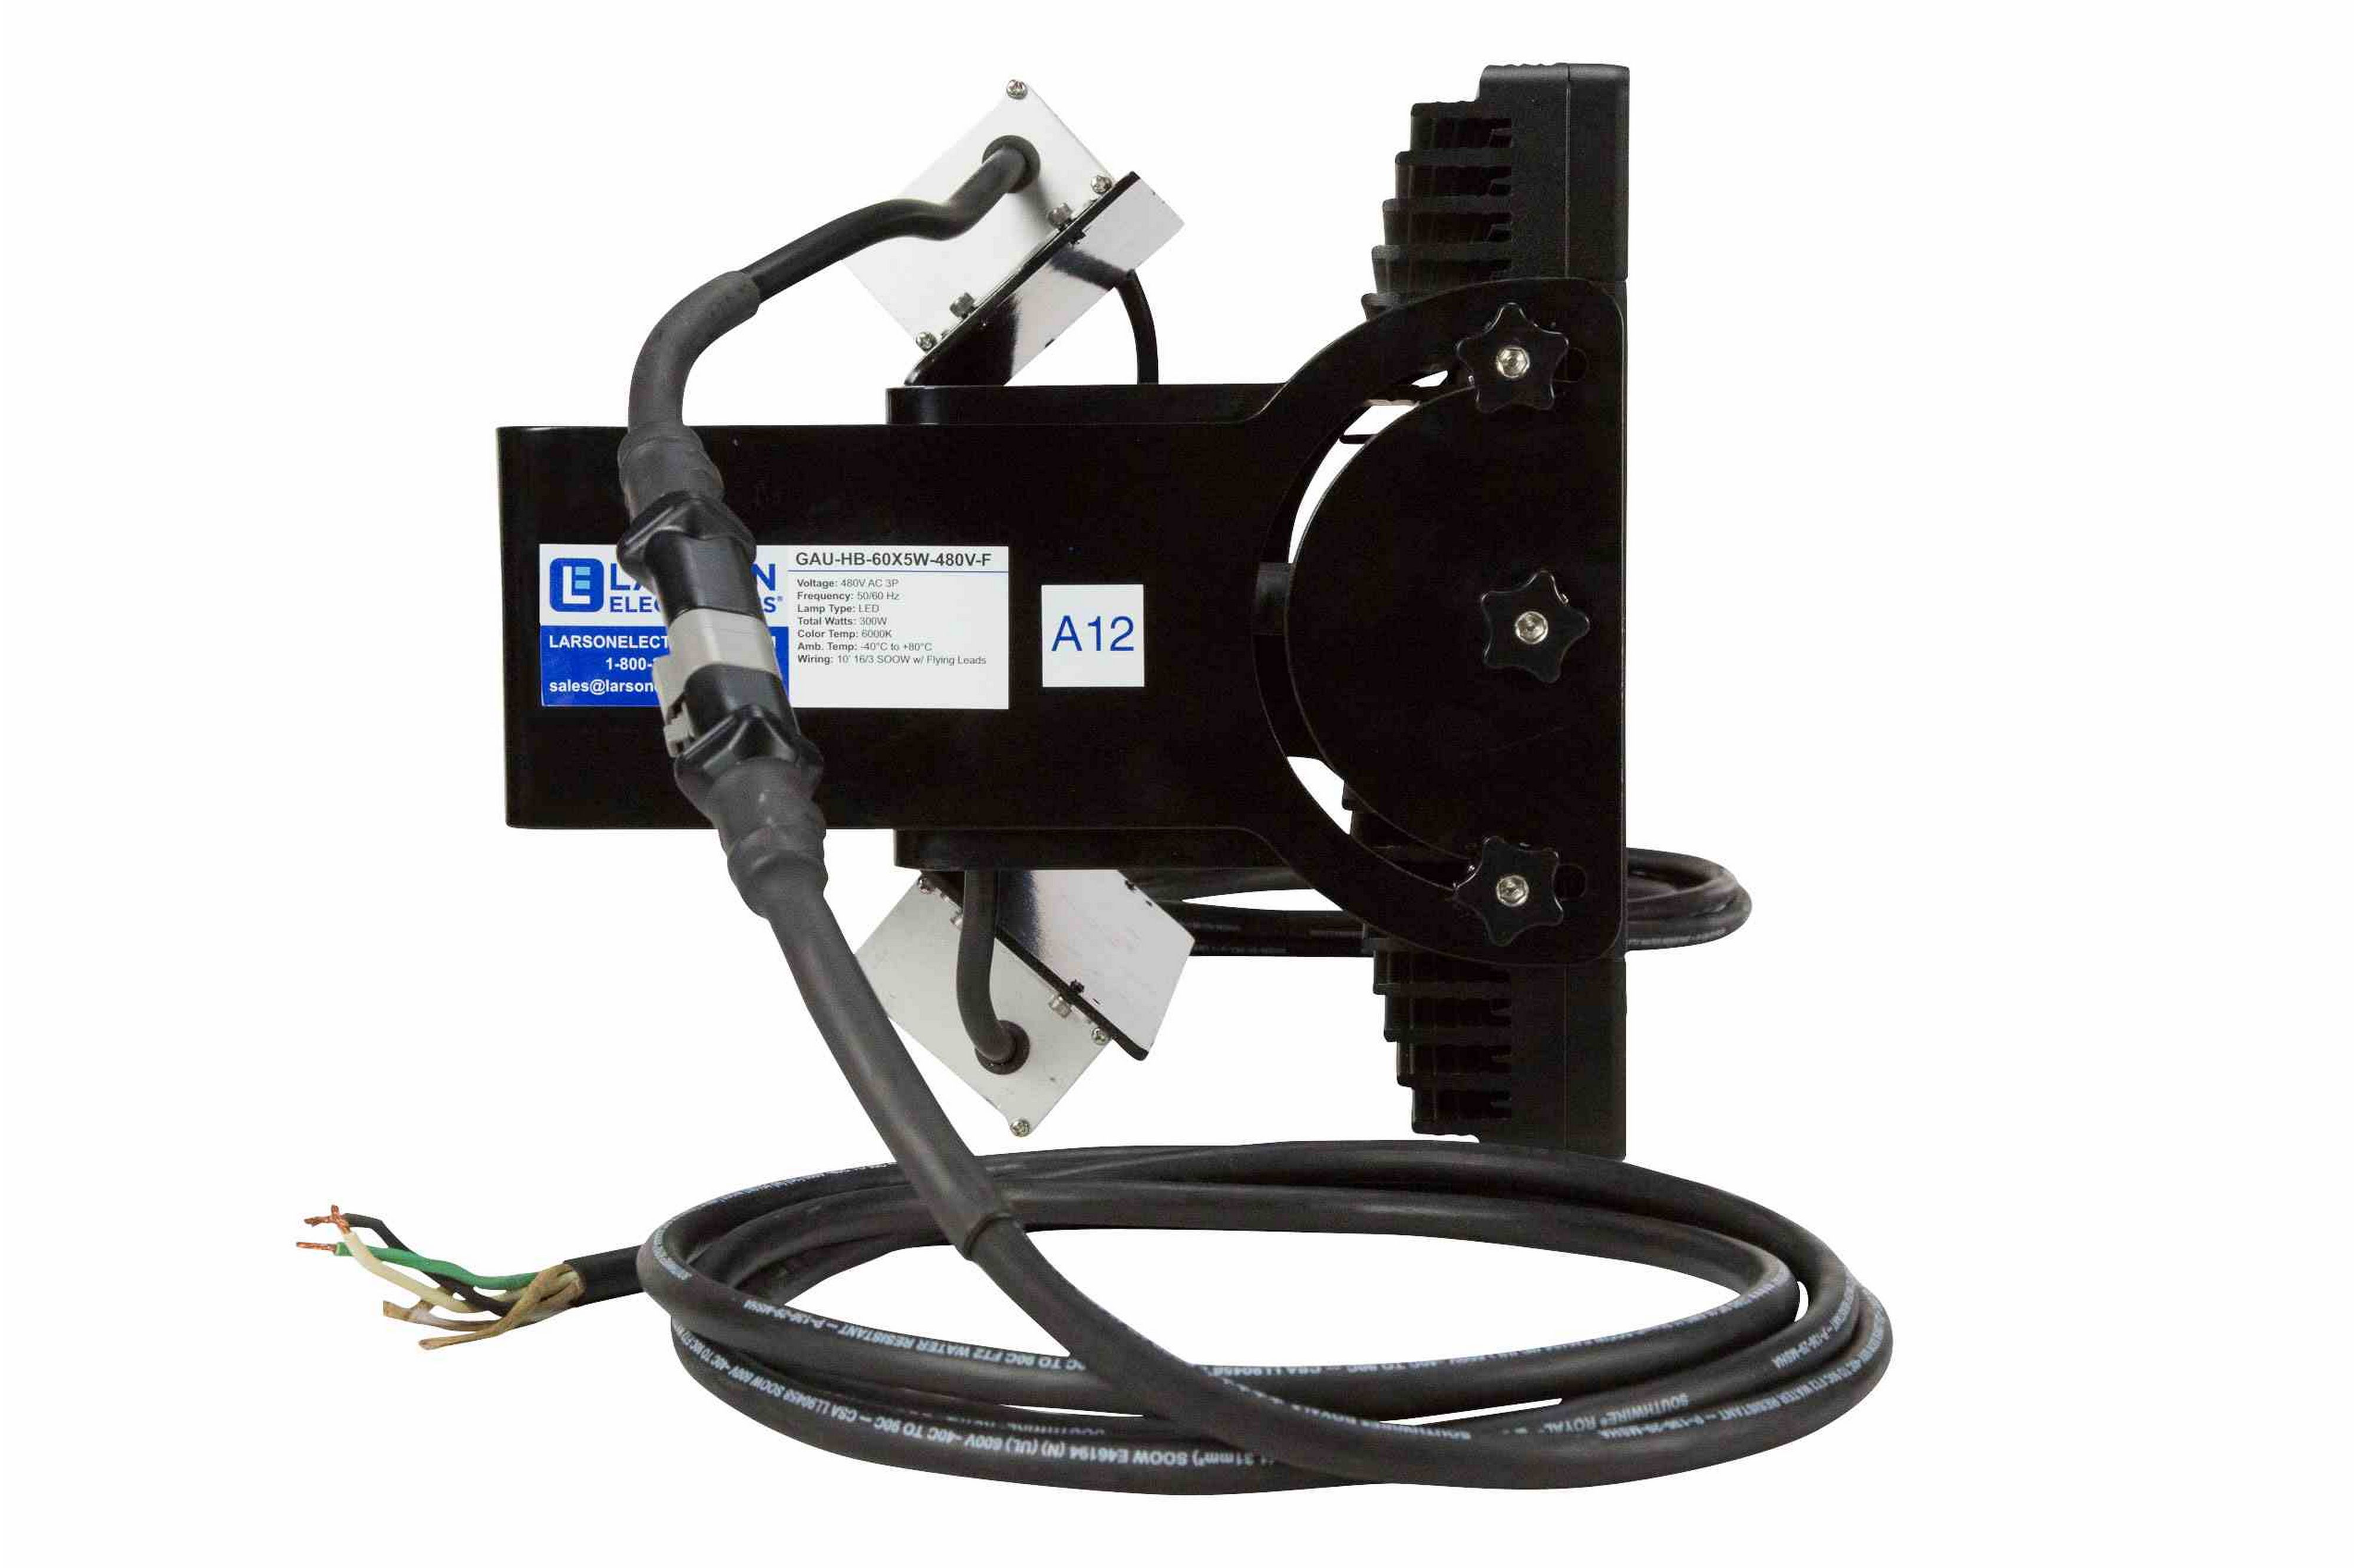 300 Watt Led Crane Rough Service Fixture 480v Ac 1000w Metal In Refers To The Installation Of Electrical Wiring Hi Res Image 3 Side